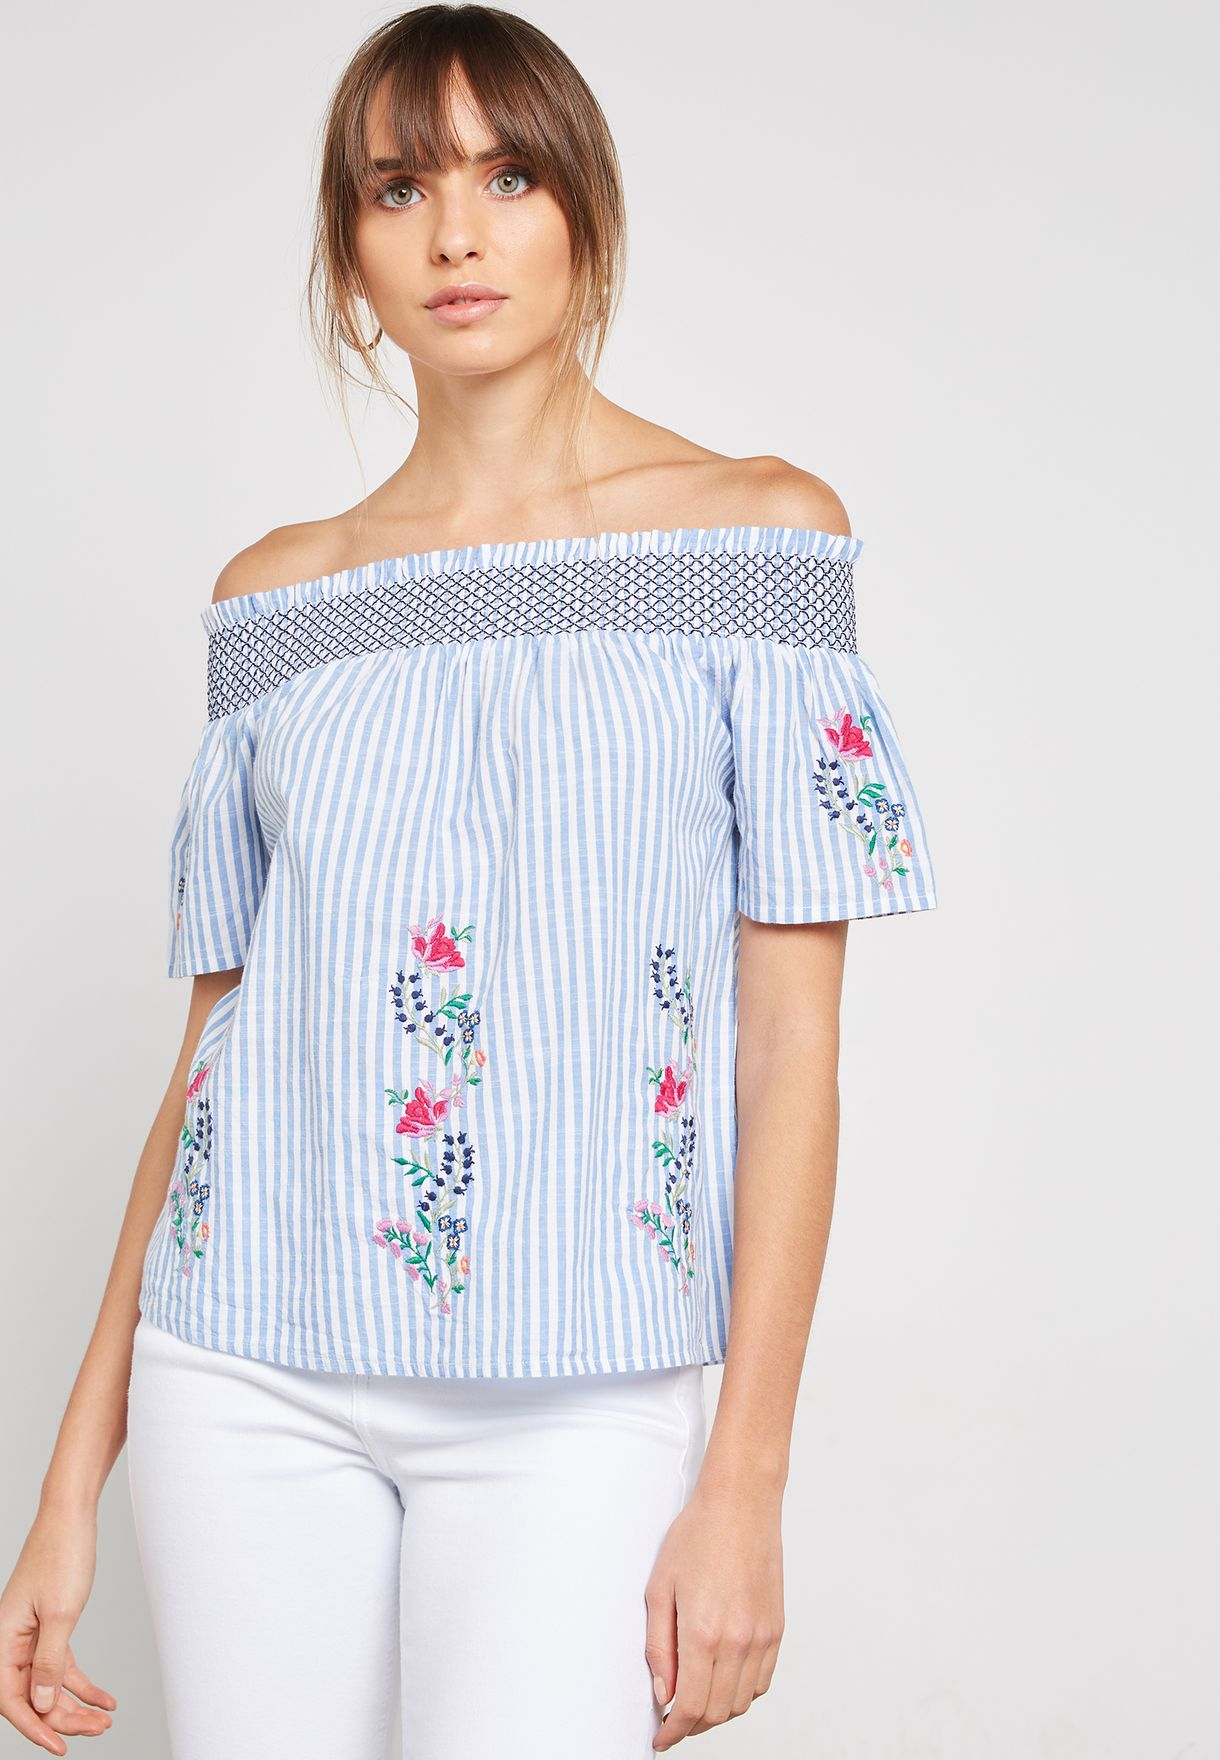 c86387a2dd48bf Shop Dorothy Perkins prints Striped Floral Embroidered Bardot Top ...